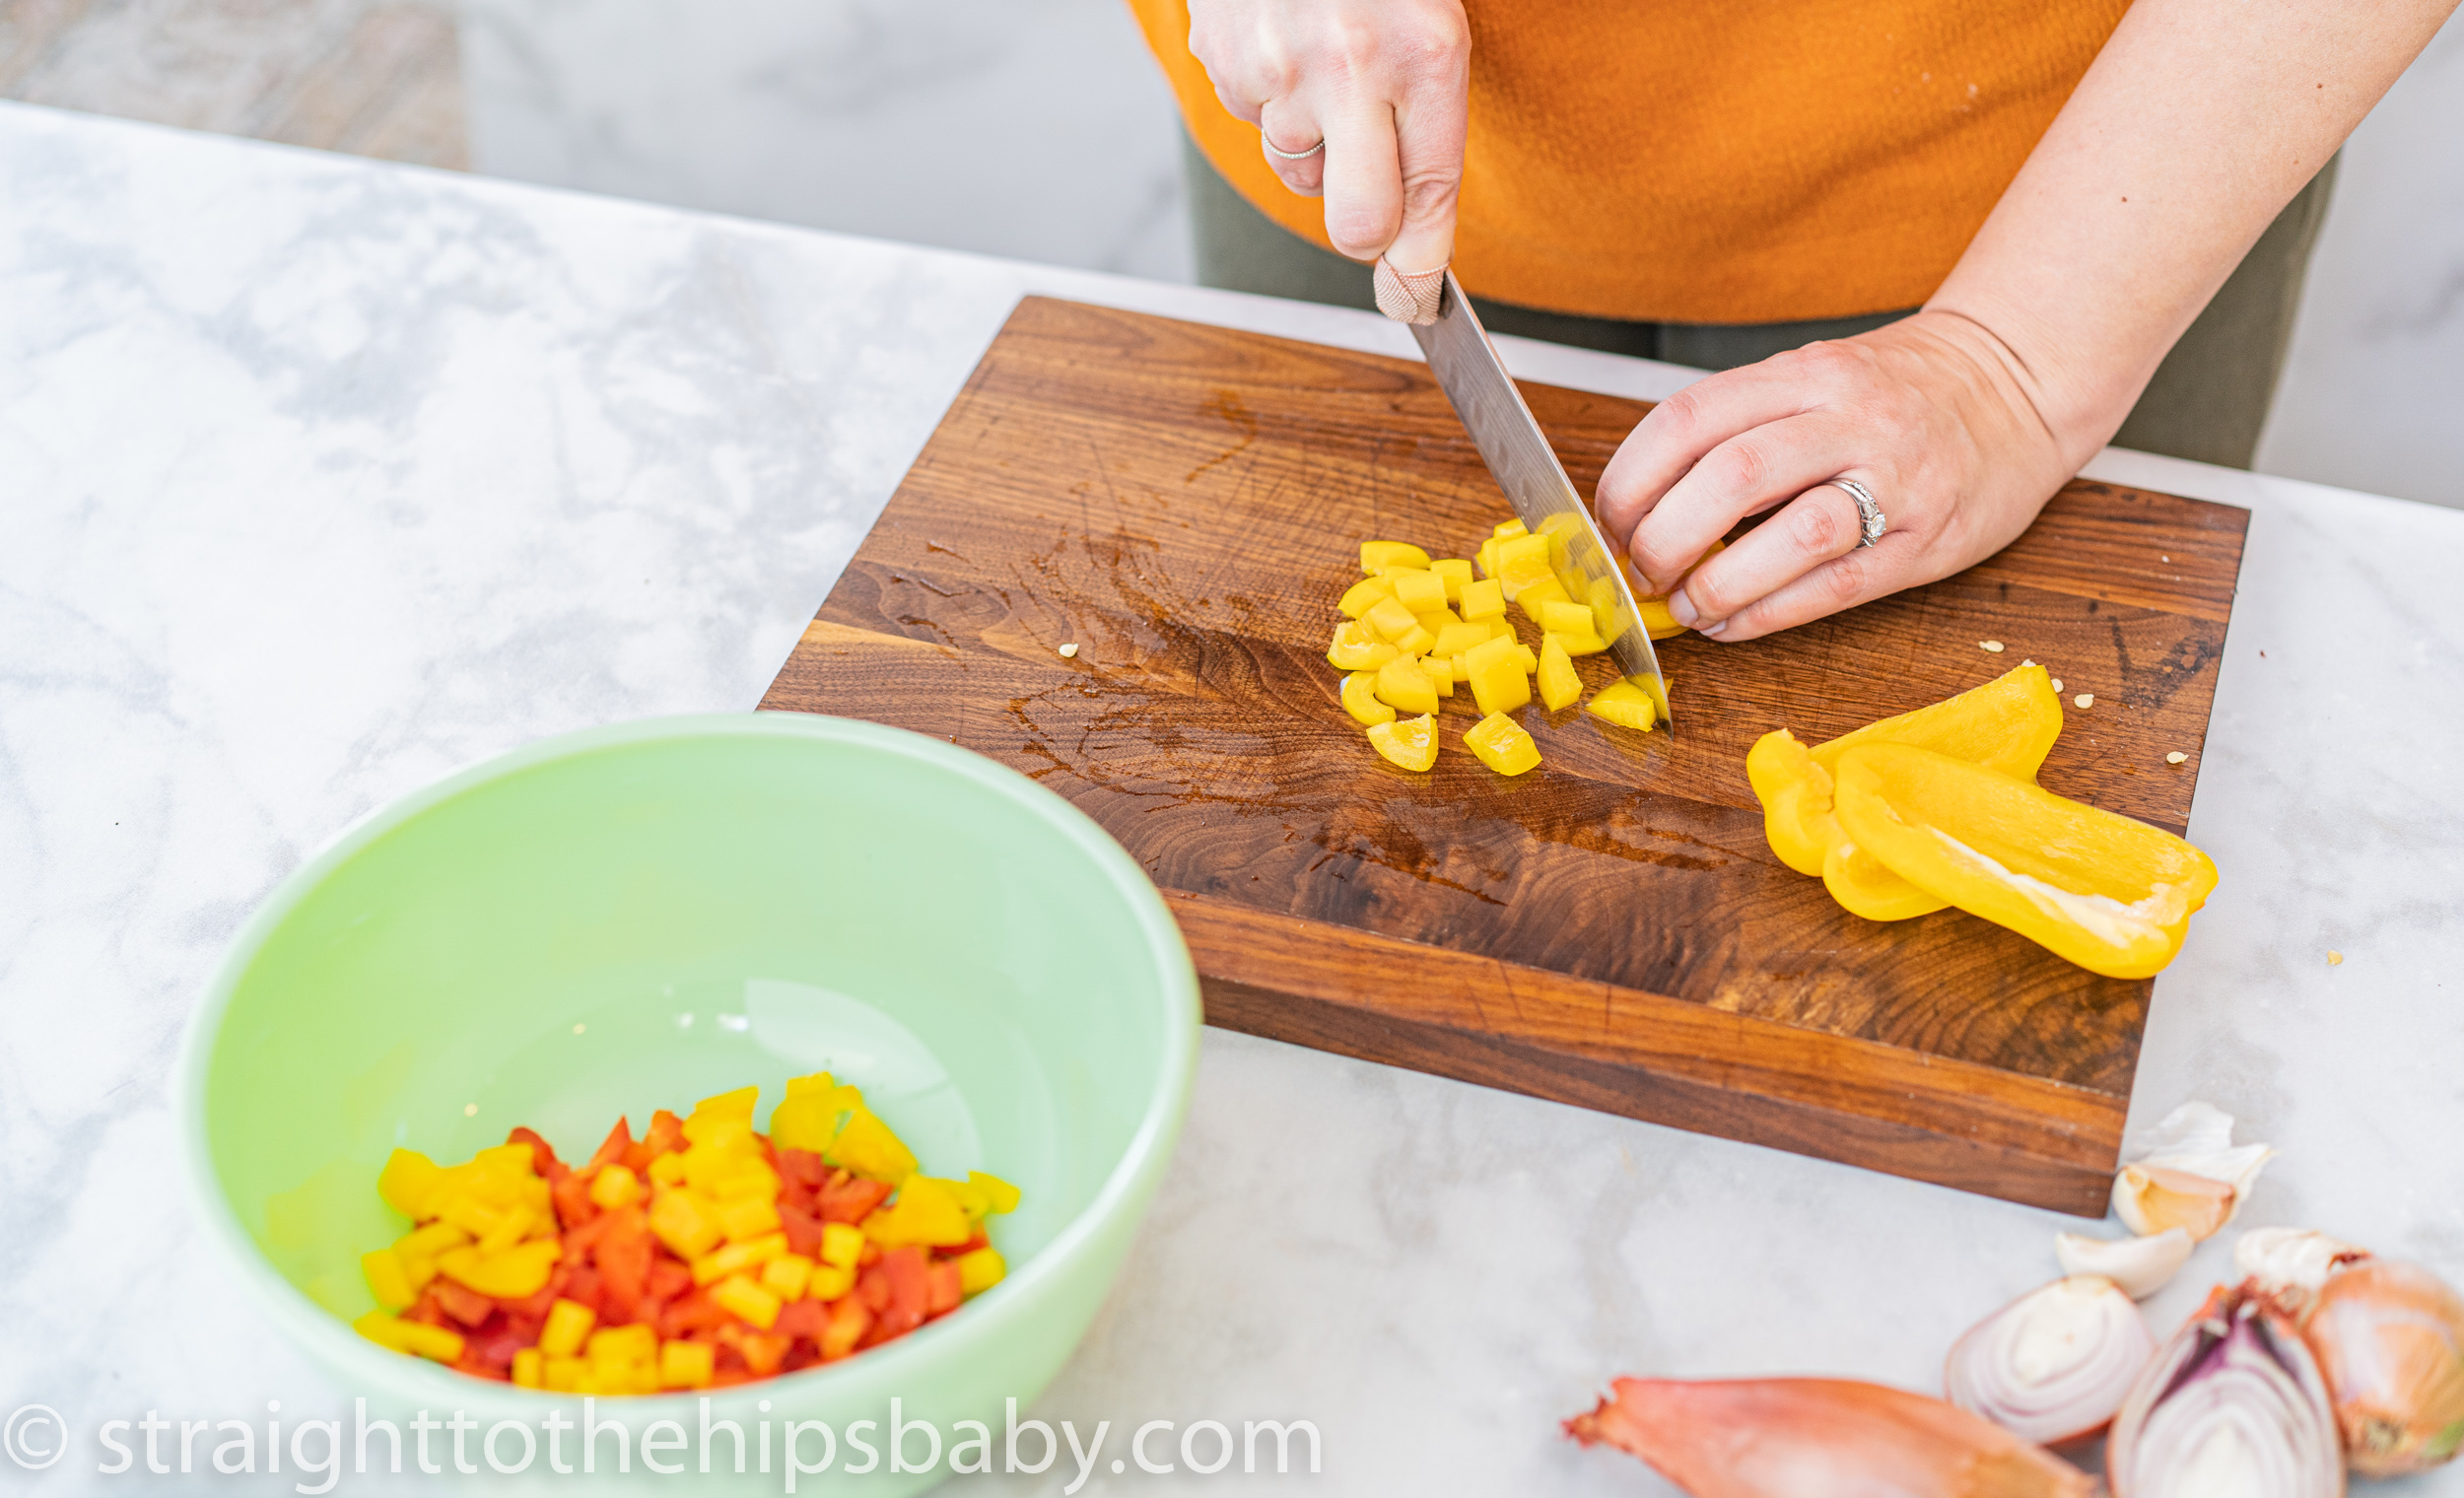 dicing yellow bell pepper